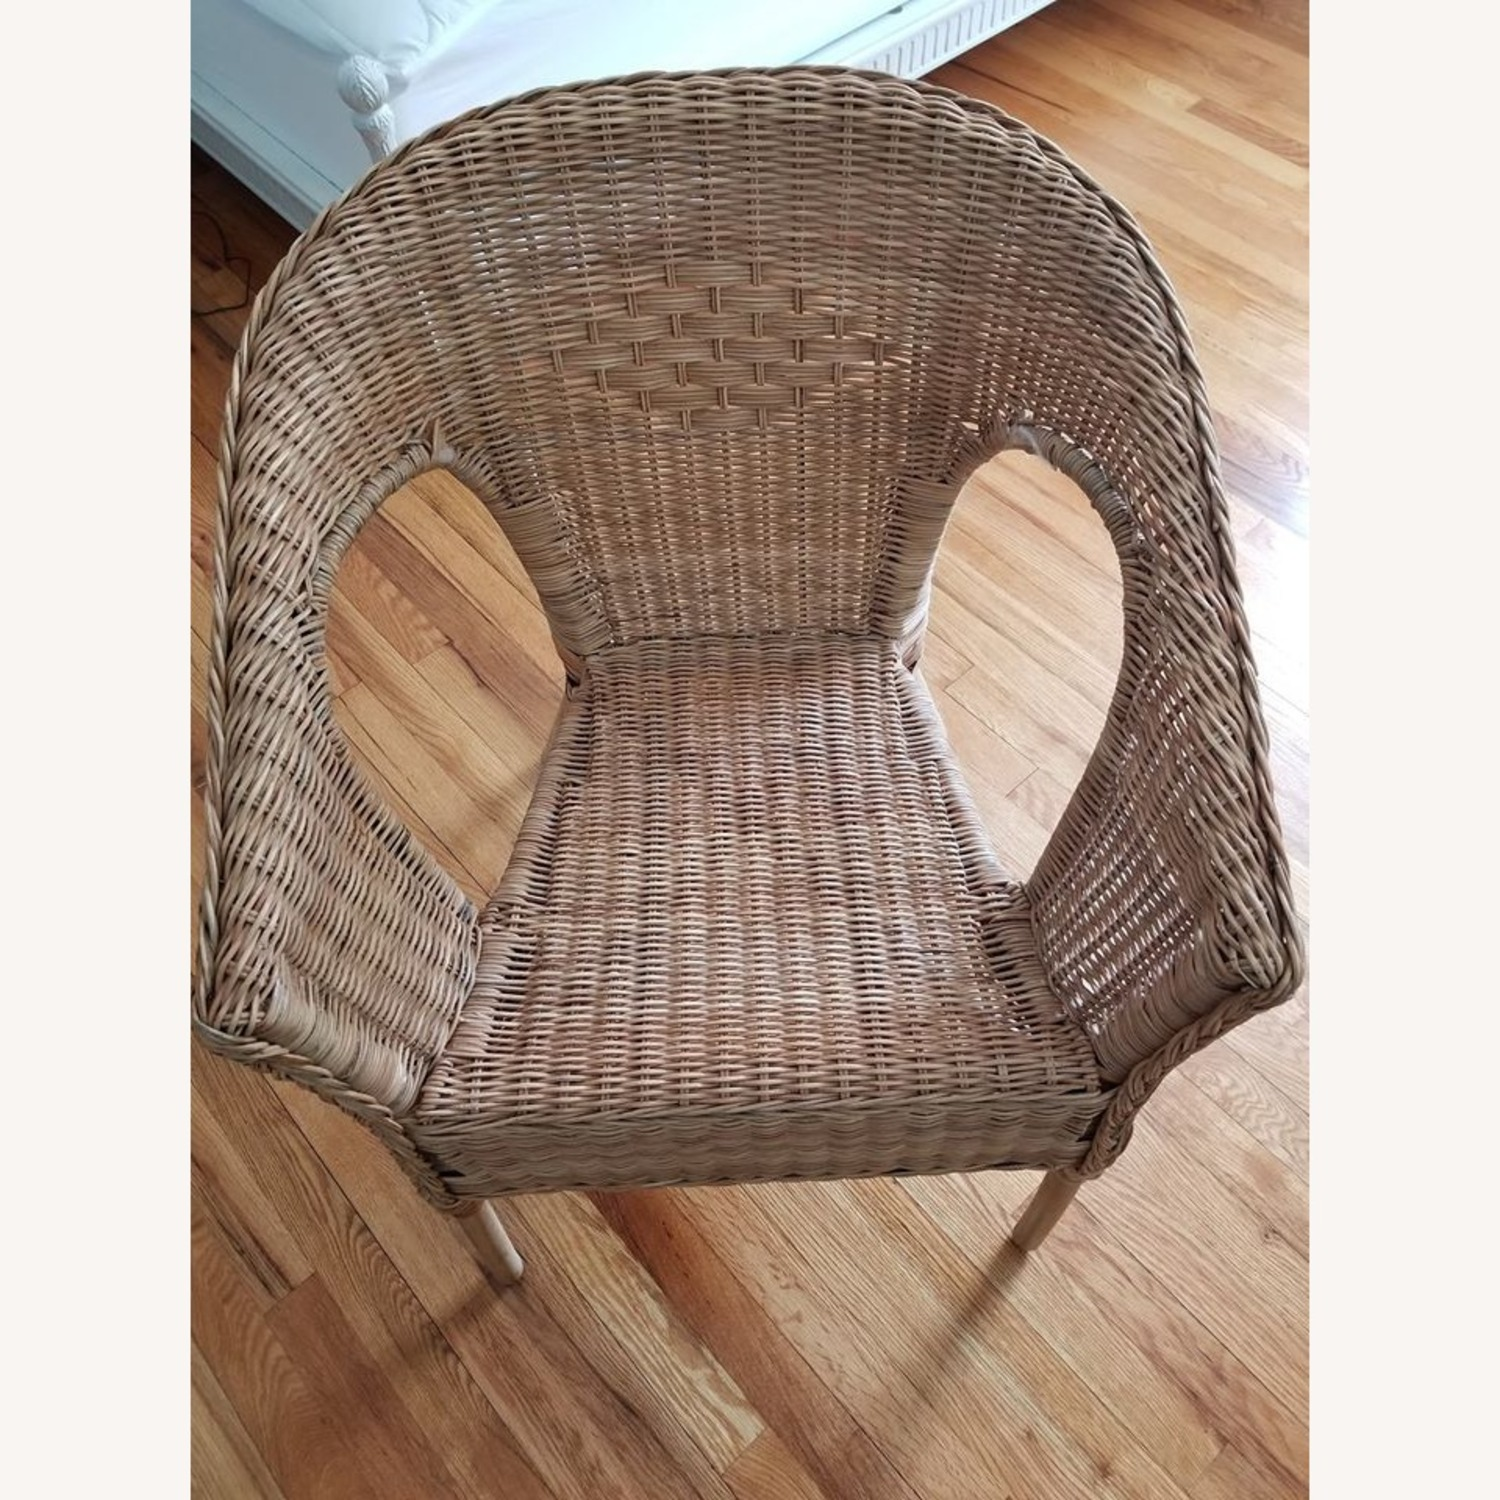 IKEA Rattan / Bamboo Accent Chair - image-3